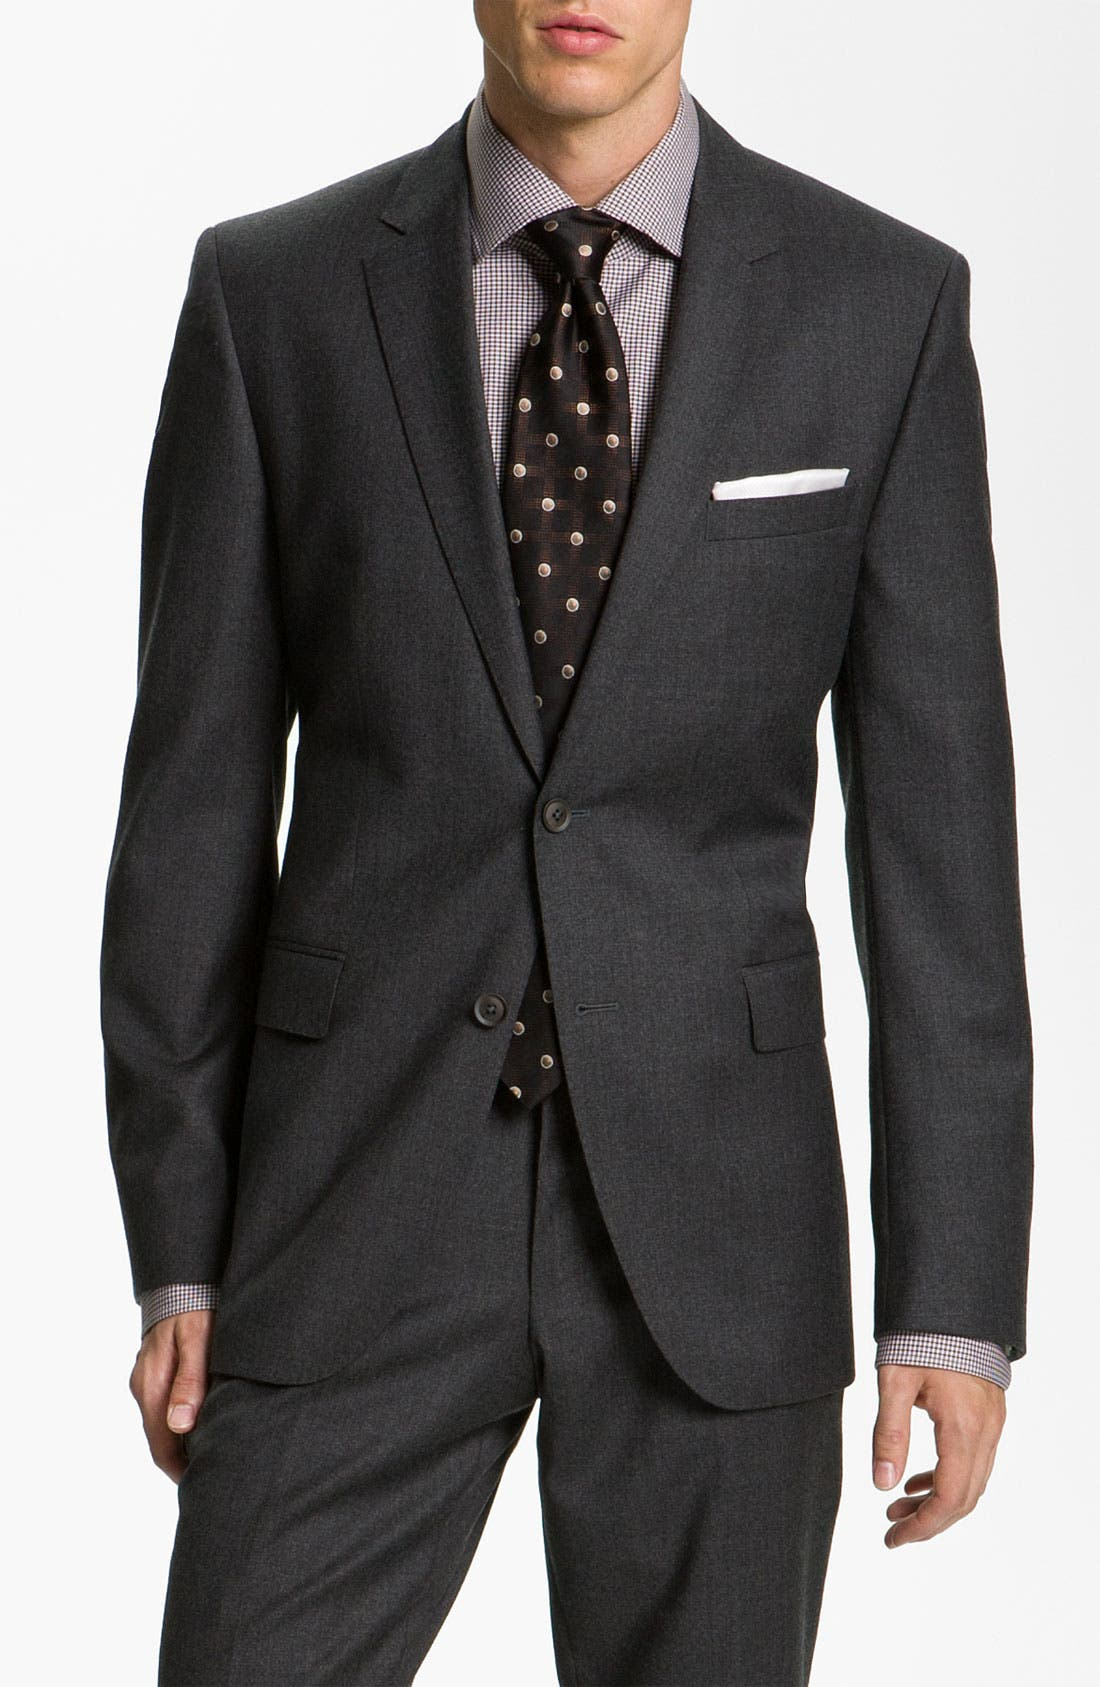 Main Image - BOSS Black Suit, Dress Shirt, & Tie